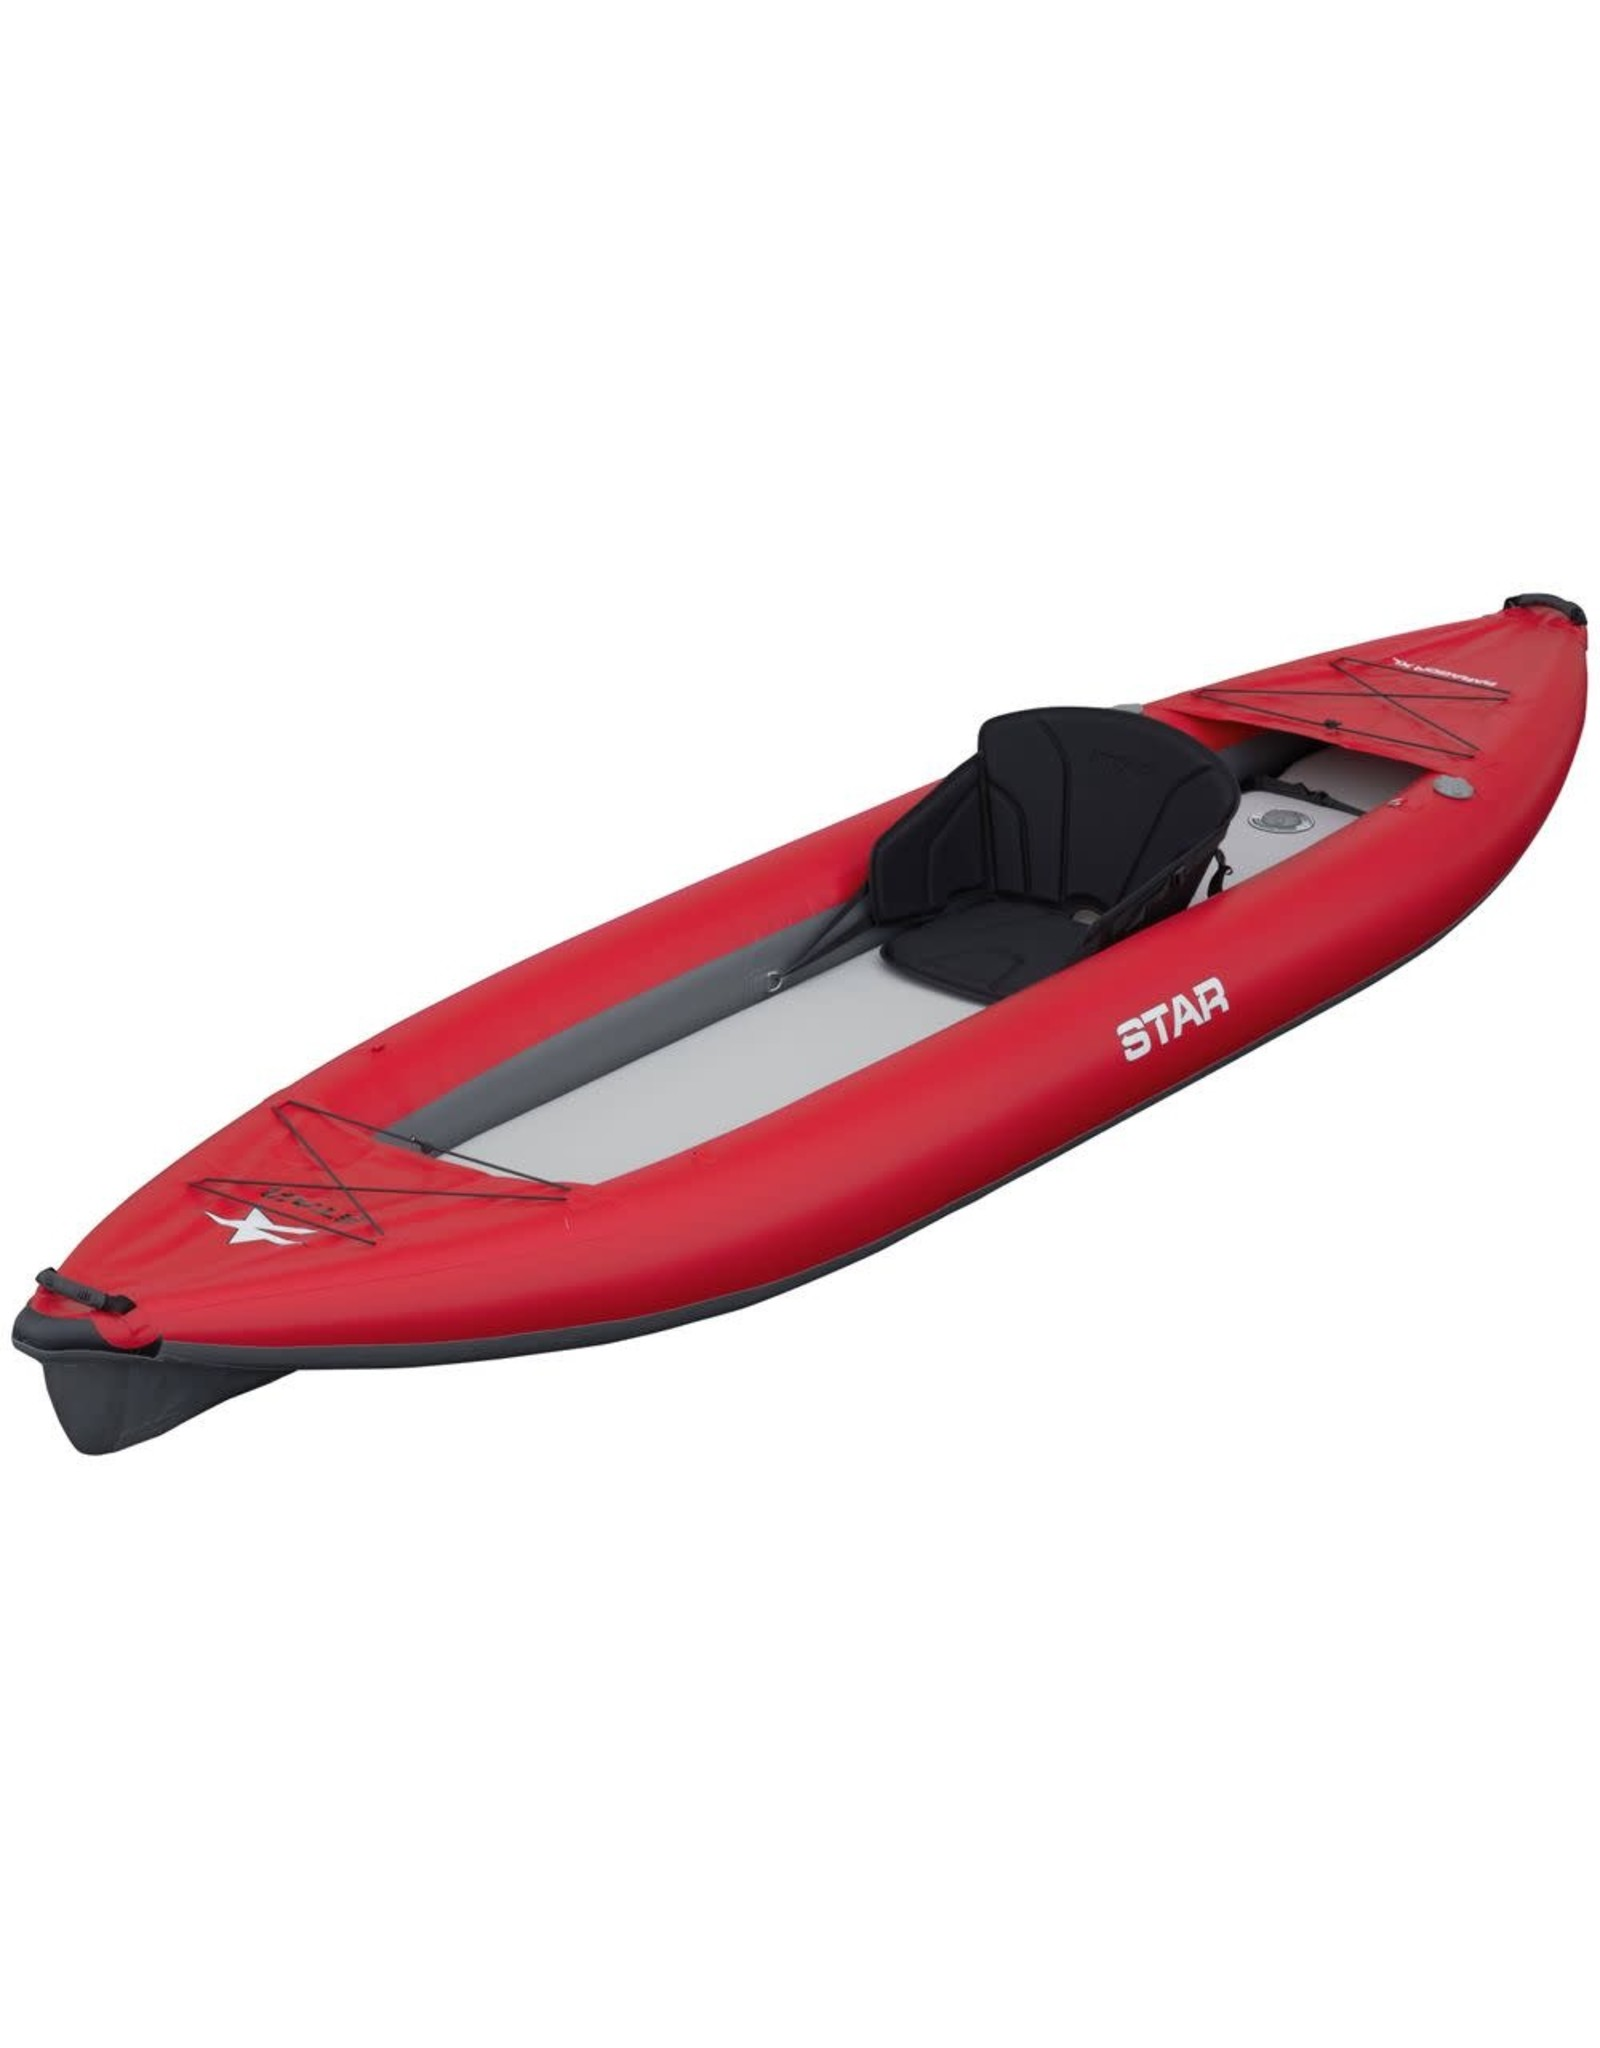 Star Star kayak Paragon XL gonflable Rouge (2019)